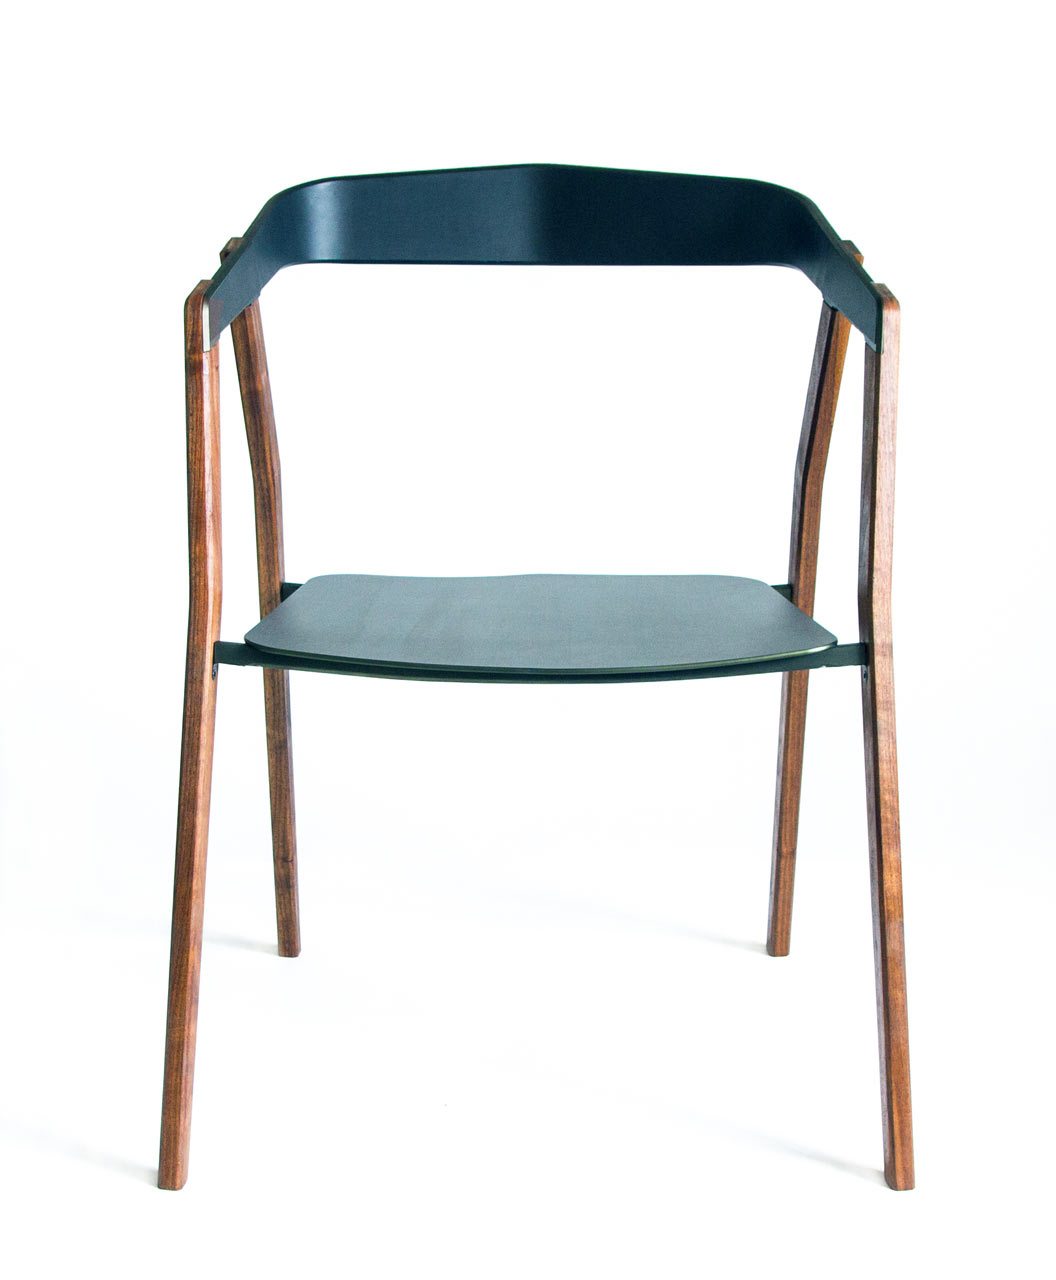 alexander-purcell-rodrigues-walnut-chair-neal-feay